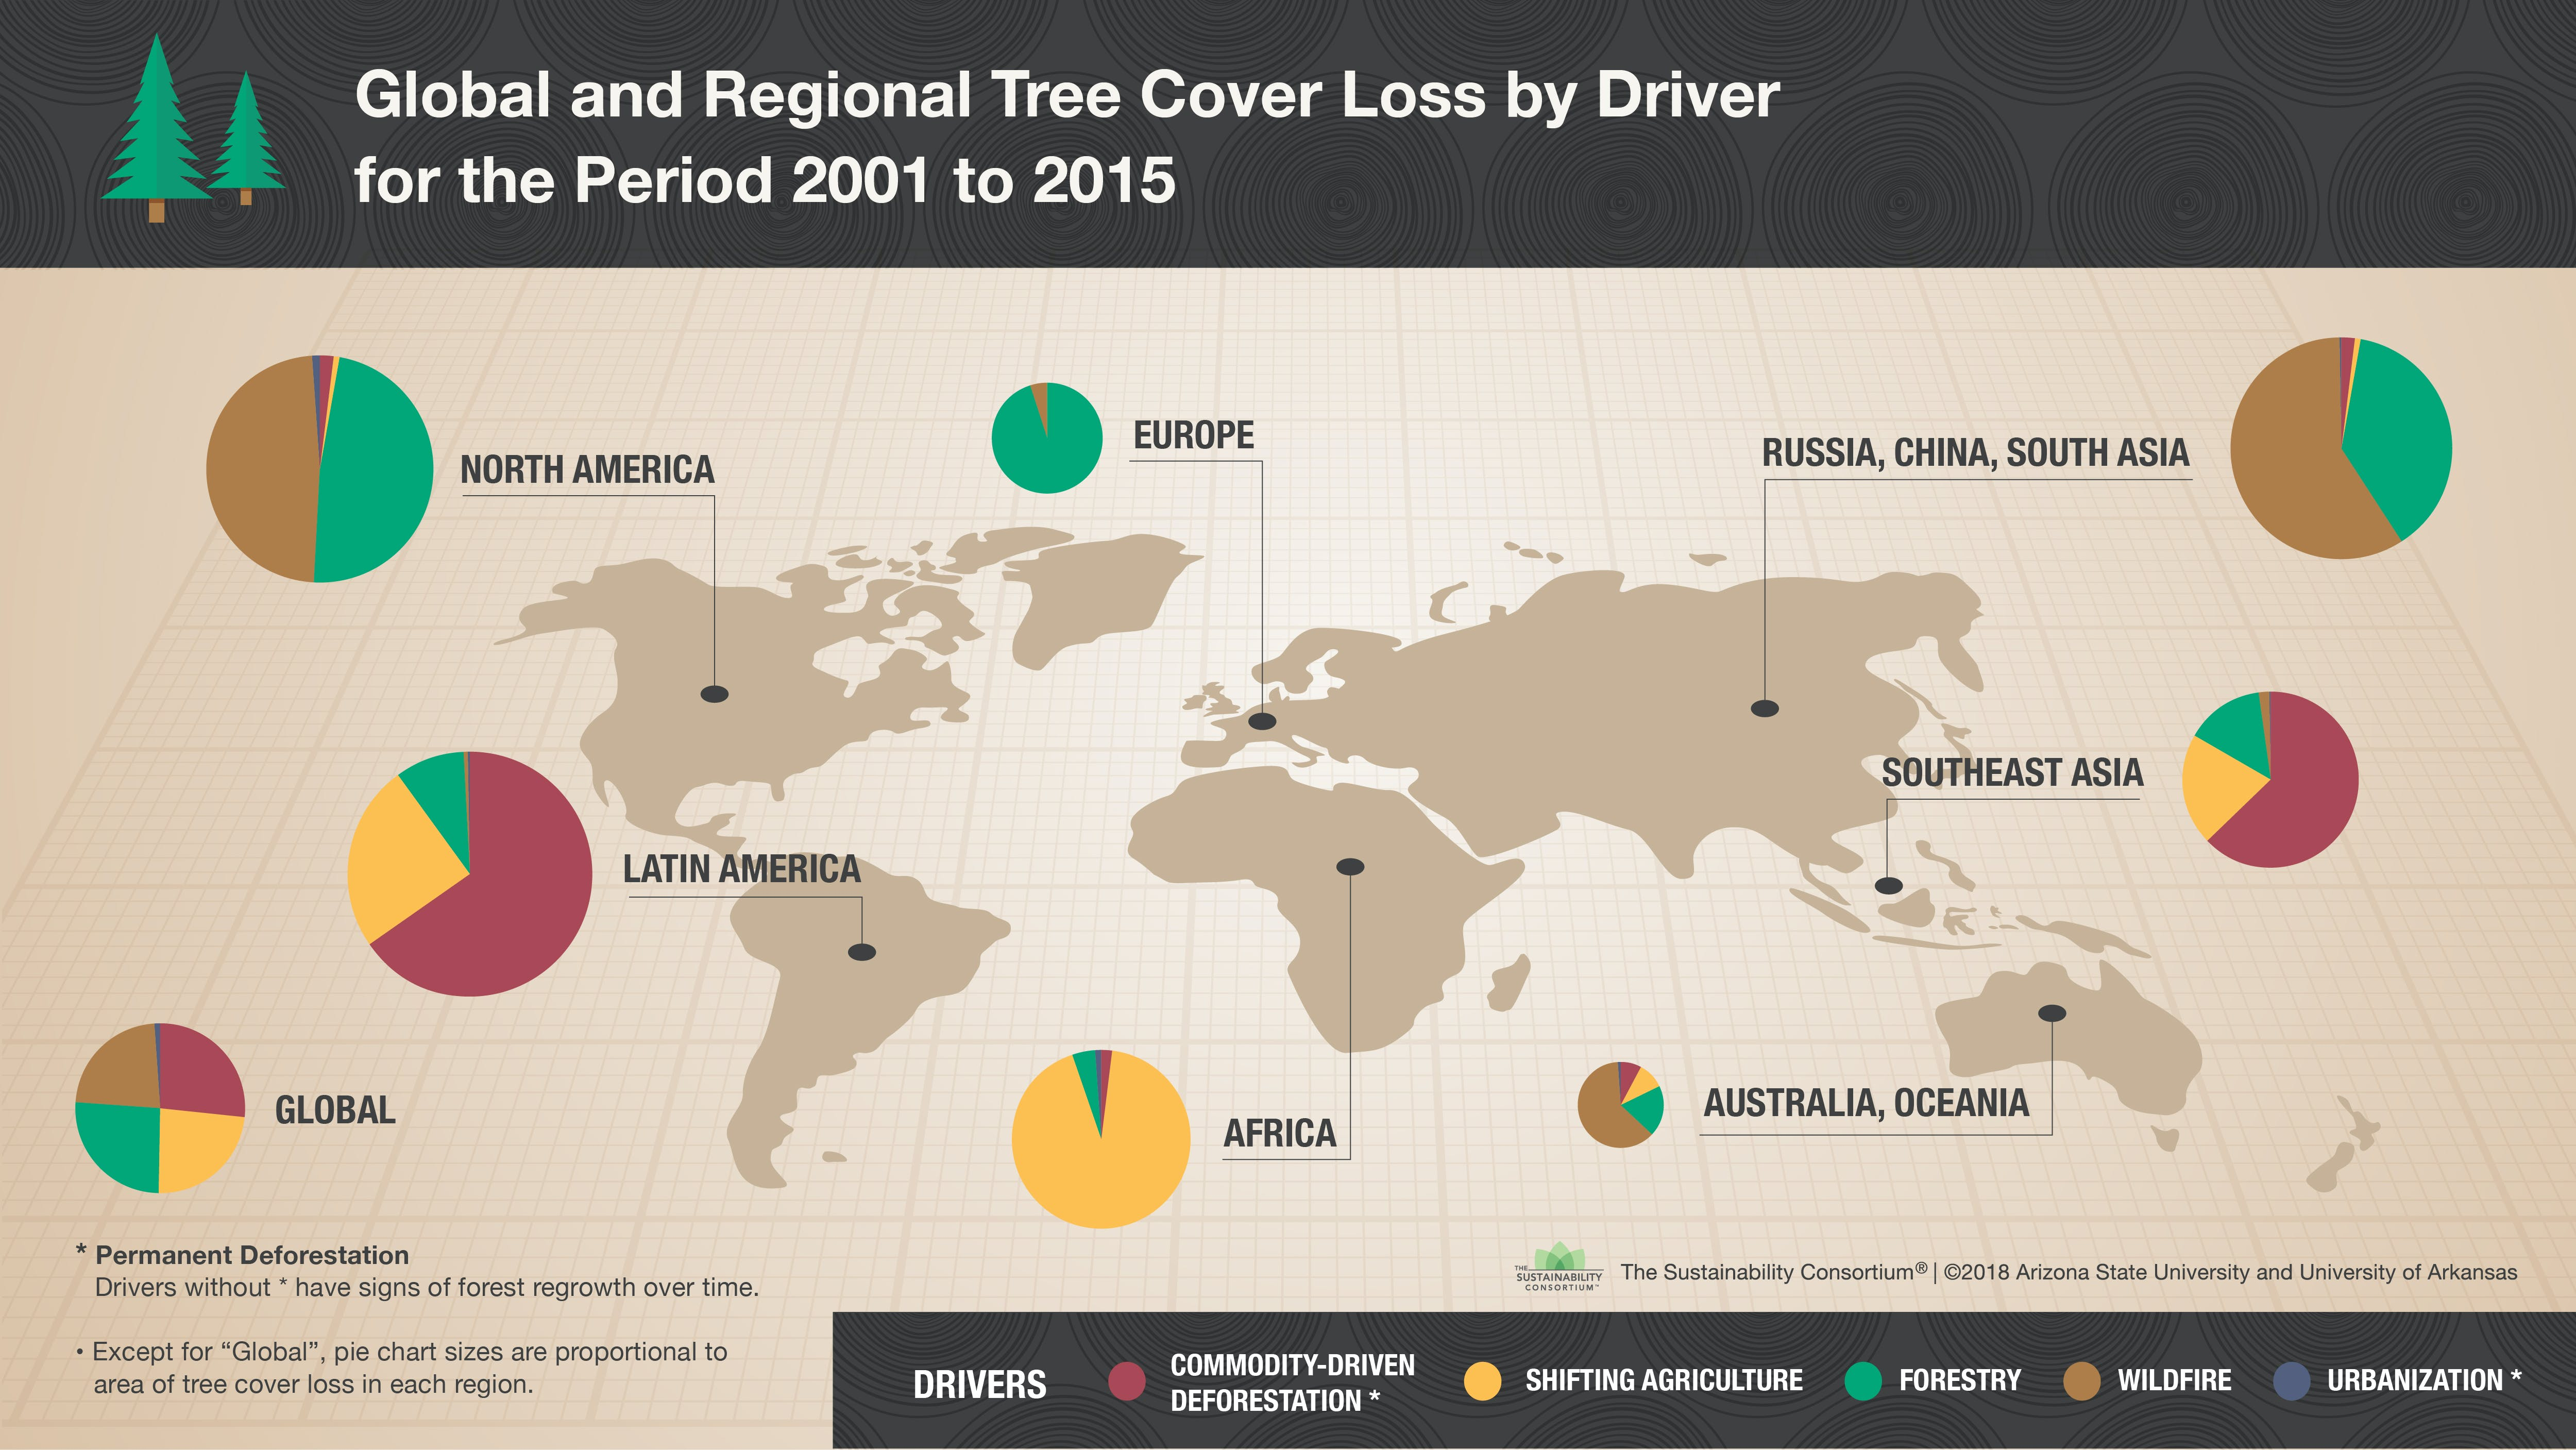 Global Forest Loss - Who's in the driver's seat? | The ... on global mining map, global unemployment map, global sea level rise map, global peace map, global famine map, global overfishing map, global wildlife map, global markets map, global culture map, global technology map, global urbanization map, global finance map, global africa map, global carbon footprint map, global world map, global hurricanes map, global china map, global salinity map, global food security map, global biomass map,